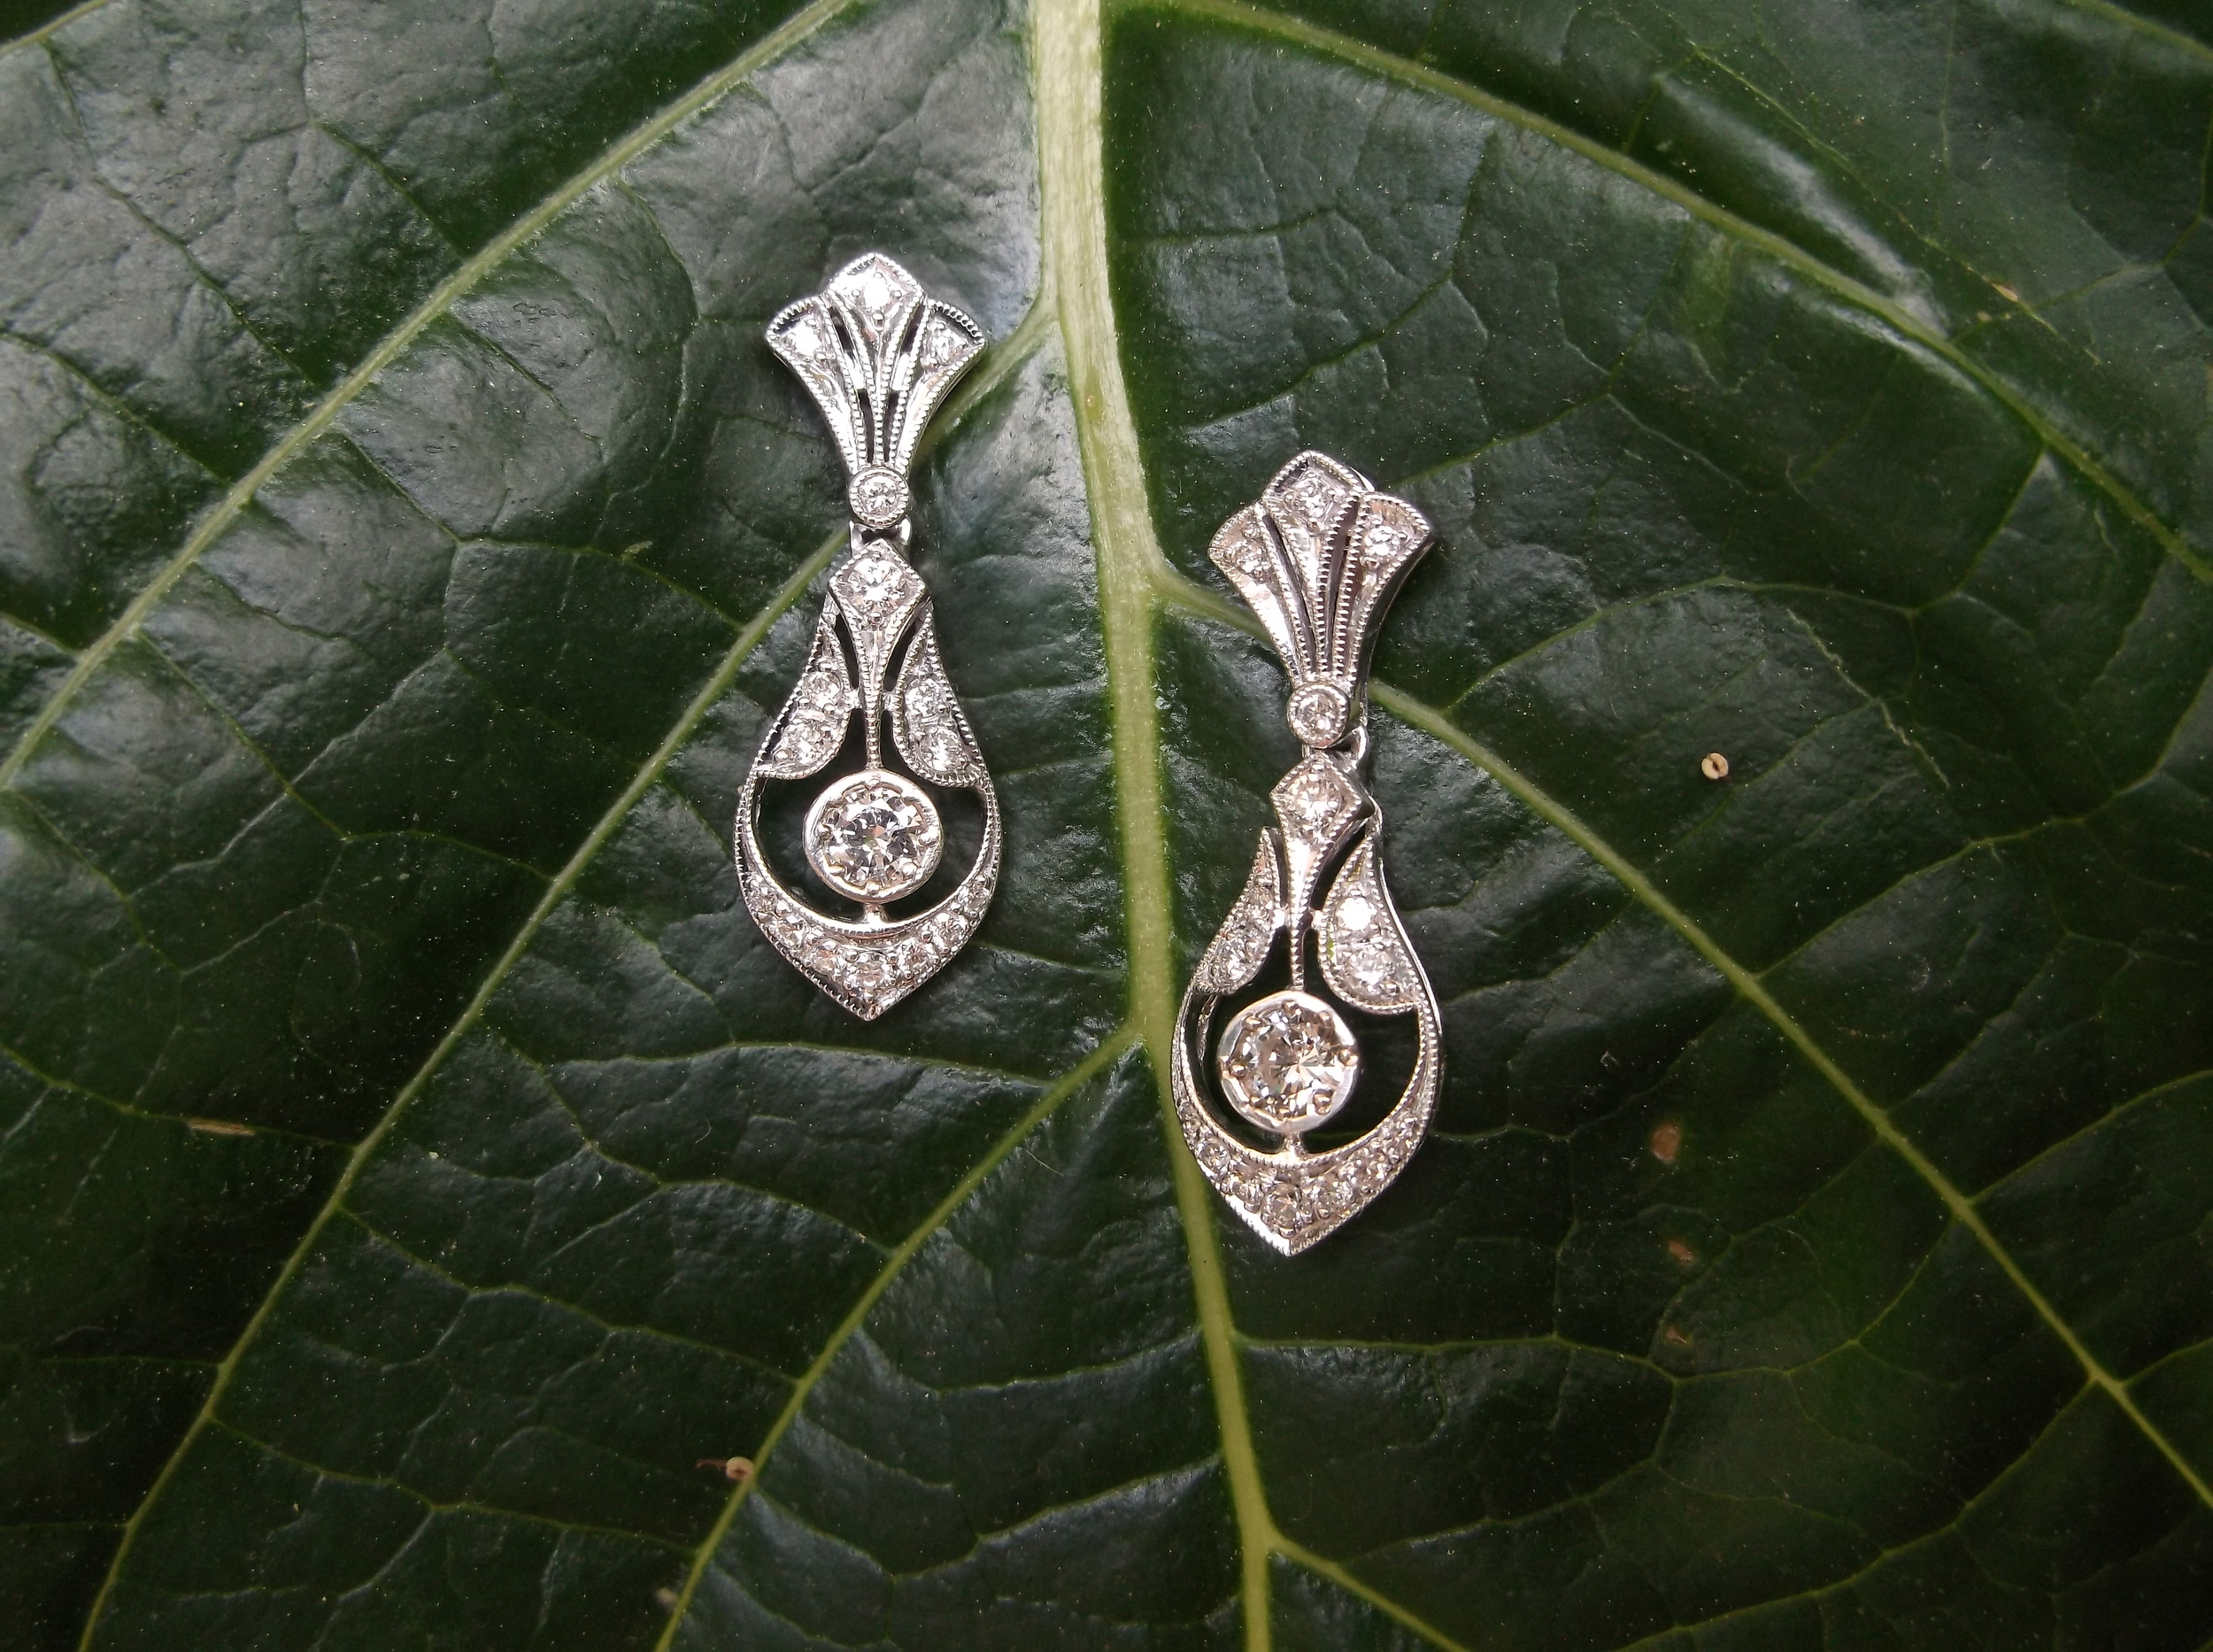 SOLD - Elegant diamond drop earrings with 0.54 carats total weight in diamonds set in white gold.